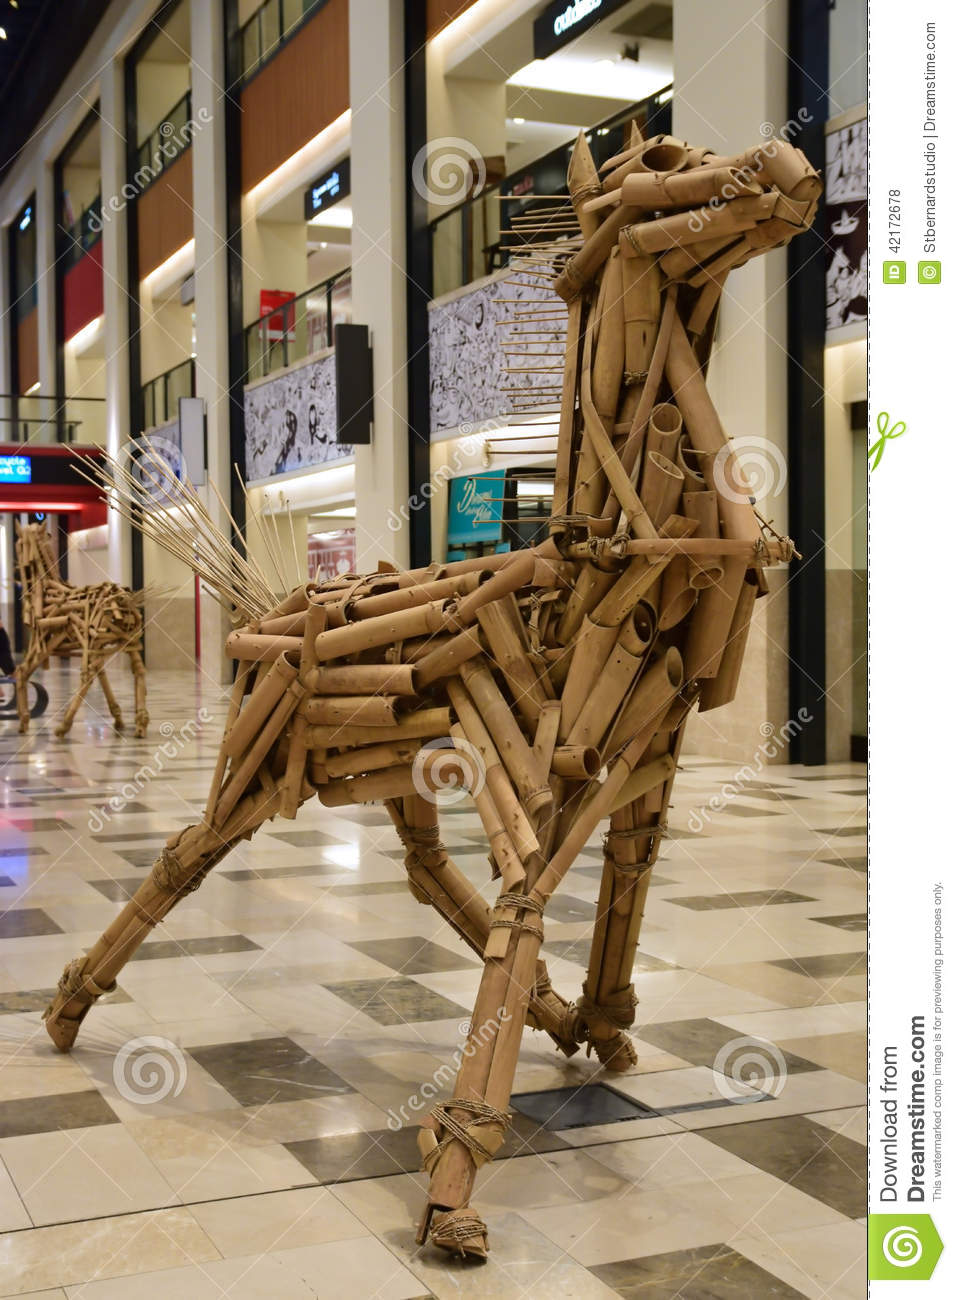 Bamboo Horse Structure Editorial Stock Photo Image 42172678